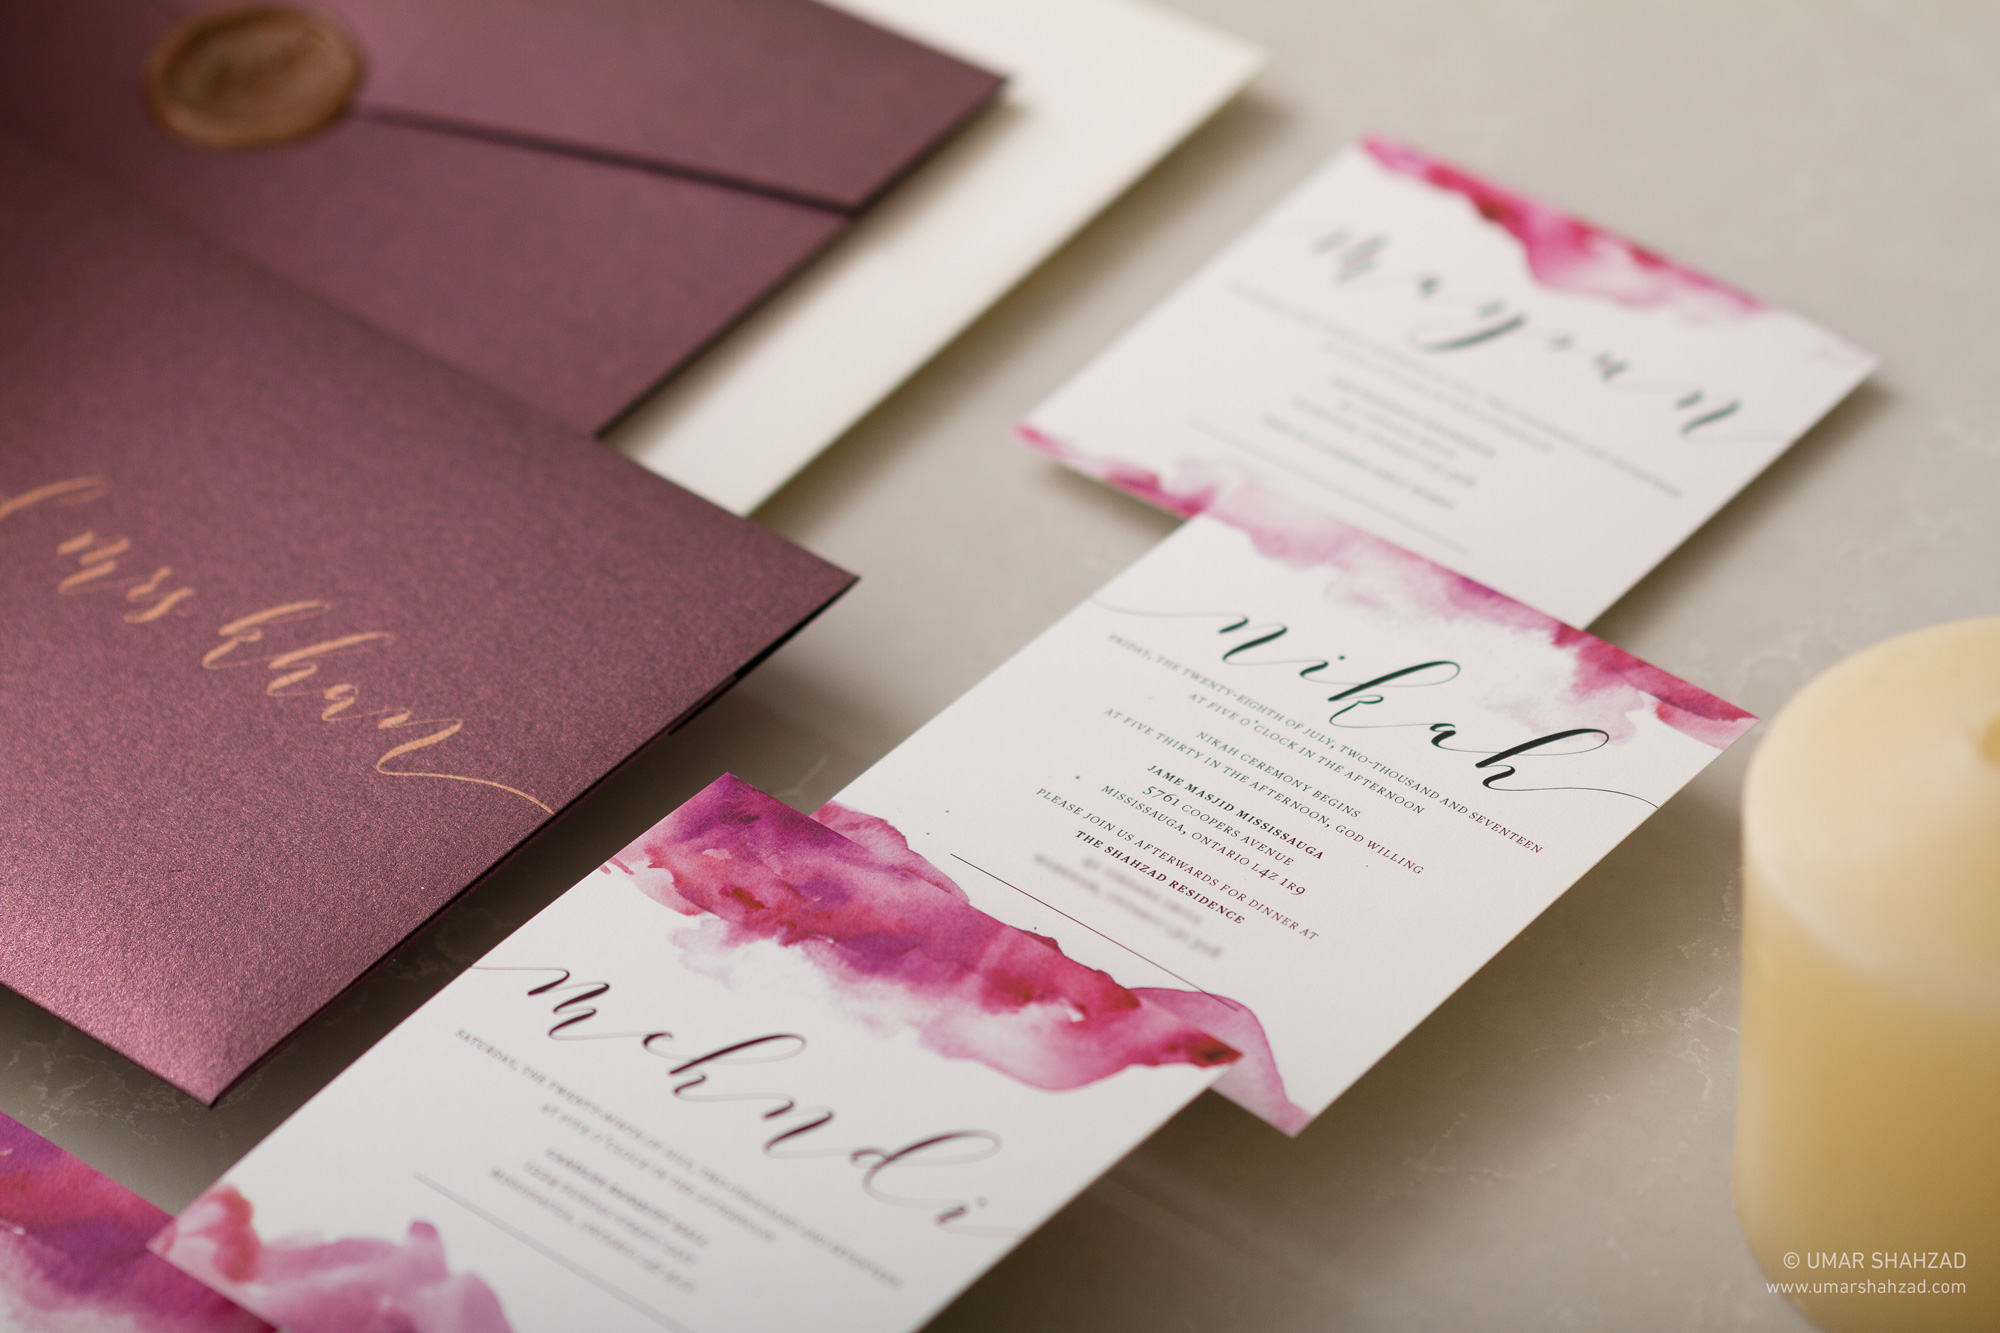 Umar_Shahzad_Wedding_Invitation_06.jpg